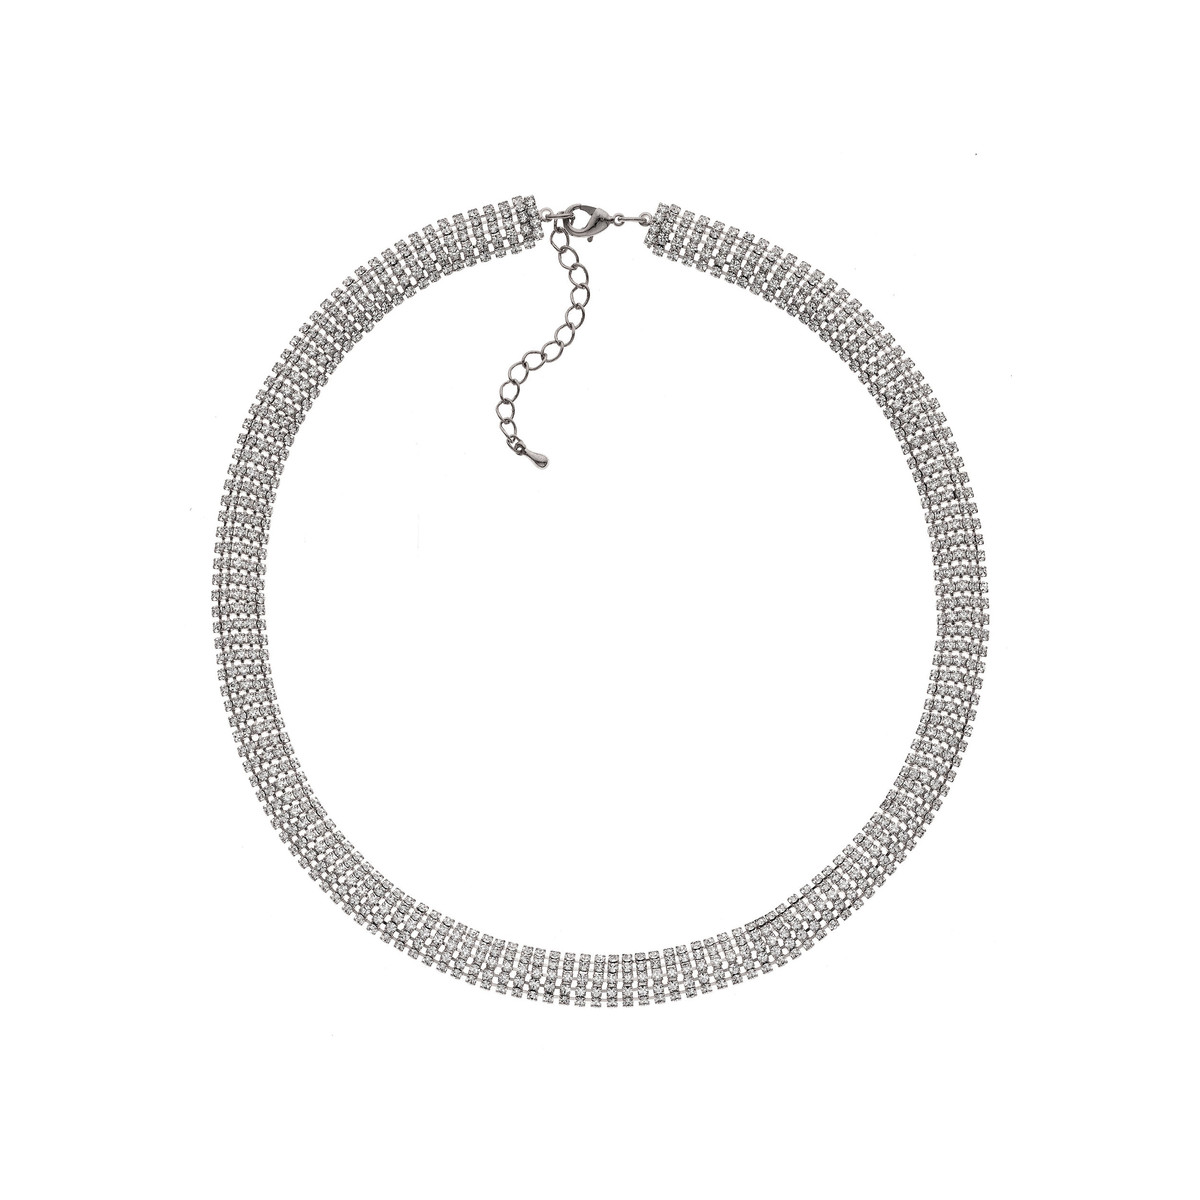 Collier fantaisie cristal